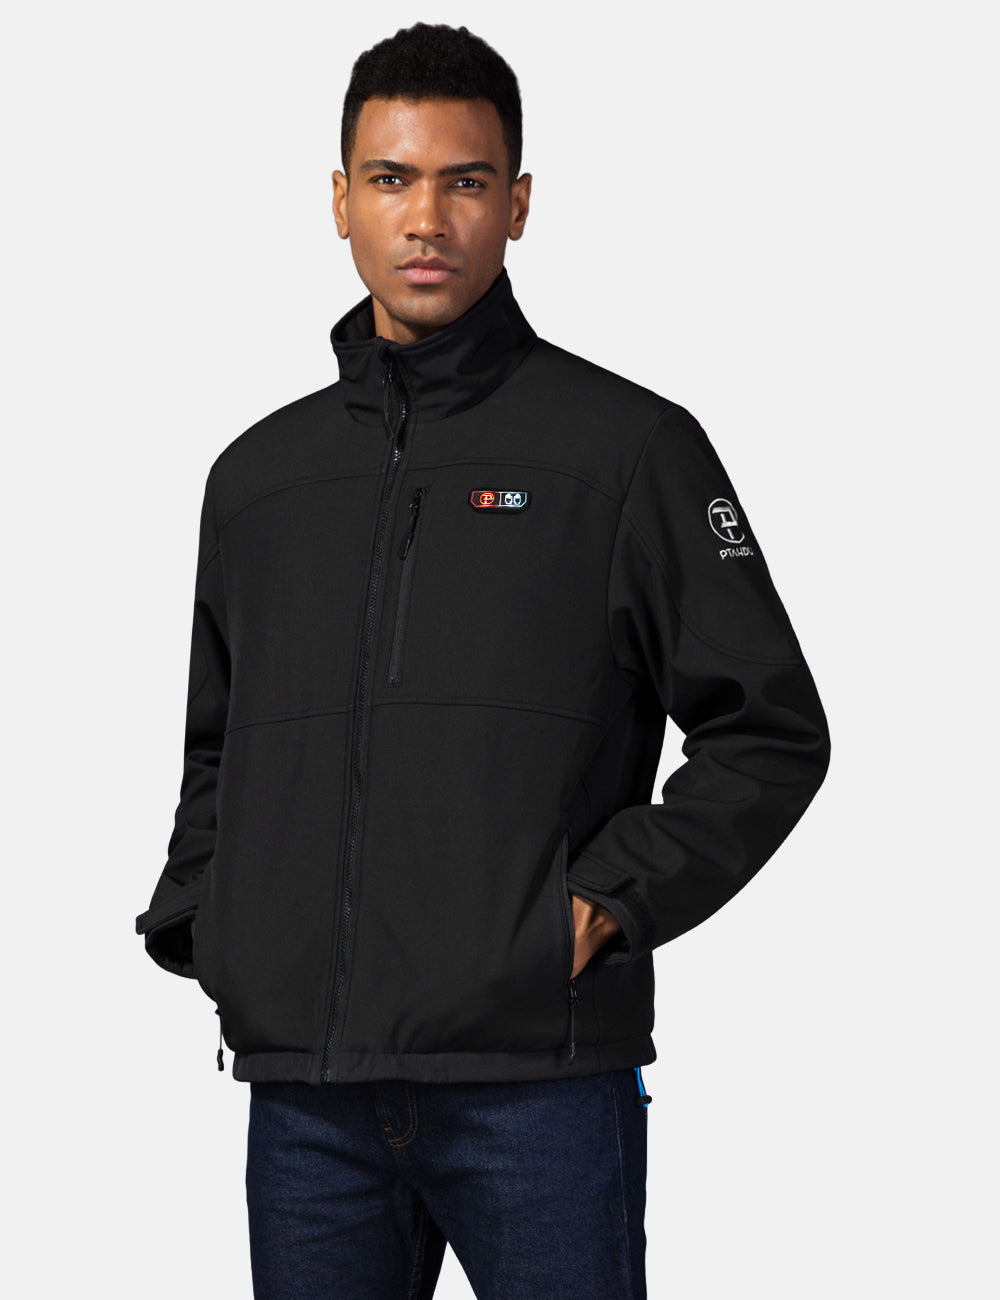 Mens 5 Zone Heated Jacket with Battery Kit